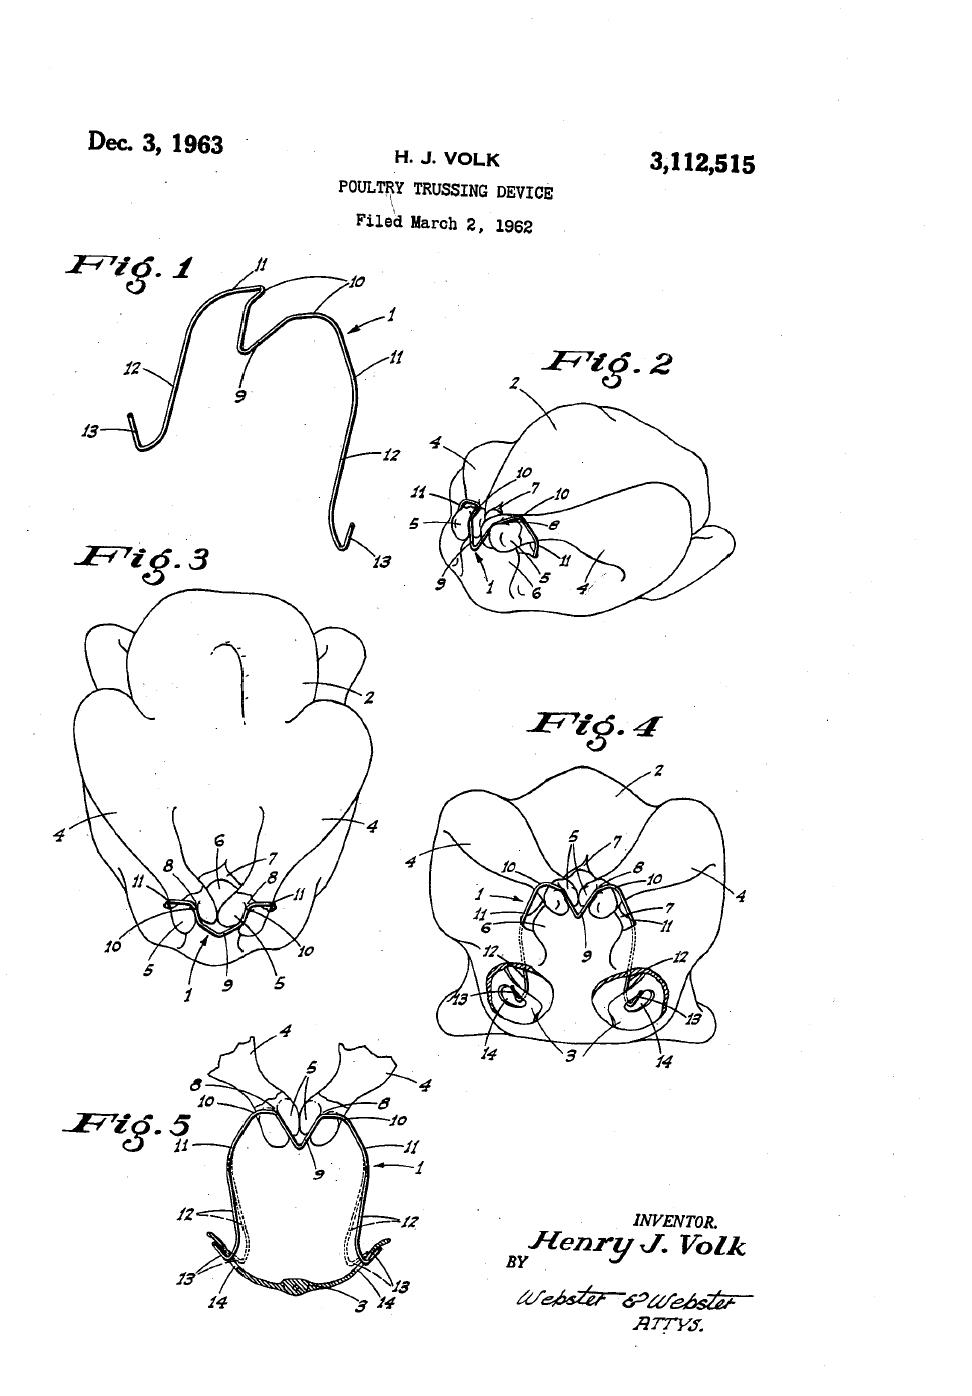 Patent drawing for the Hok-Lok, a Poultry Trussing Device.